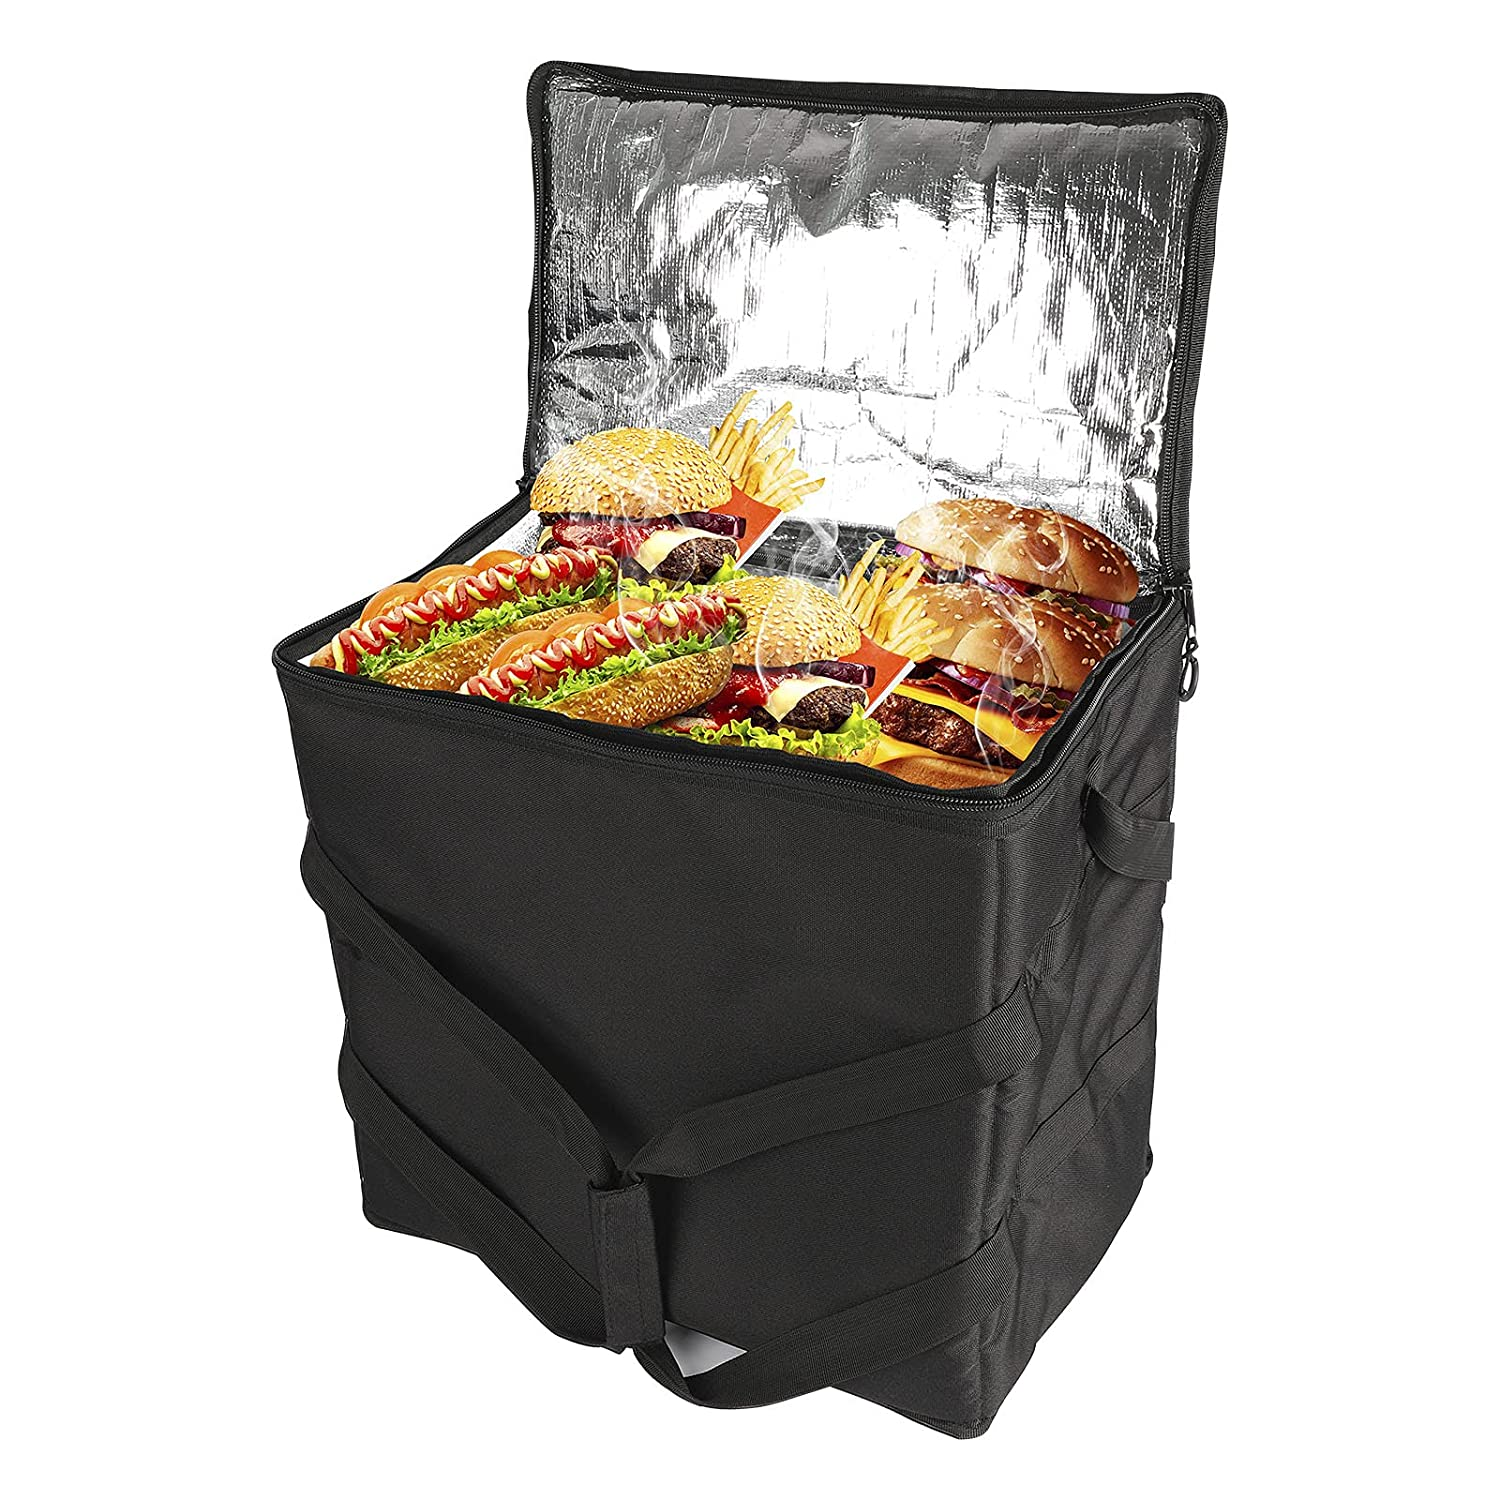 Livtribe DC 12V Heated Food Delivery Bag, Portable Pizza Delivery Thermal System, Insulated Cooler Food Delivery Bag, 17.7